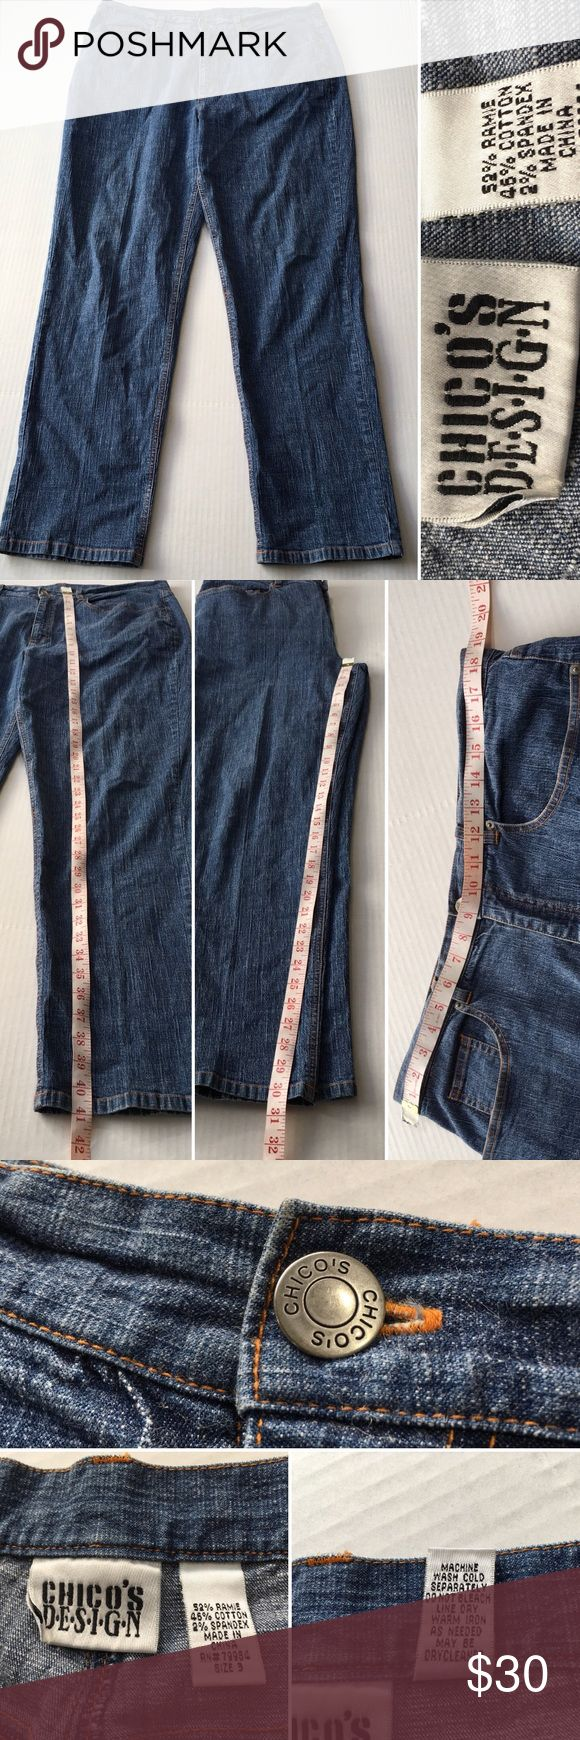 Chico's size 3 - 16 jeans Chico jeans size 3 /16. Very good used condition. Minor faded spot on back leg cuff. Maybe washable. Measurements included. Smoke and pet free. Chico's Jeans Straight Leg